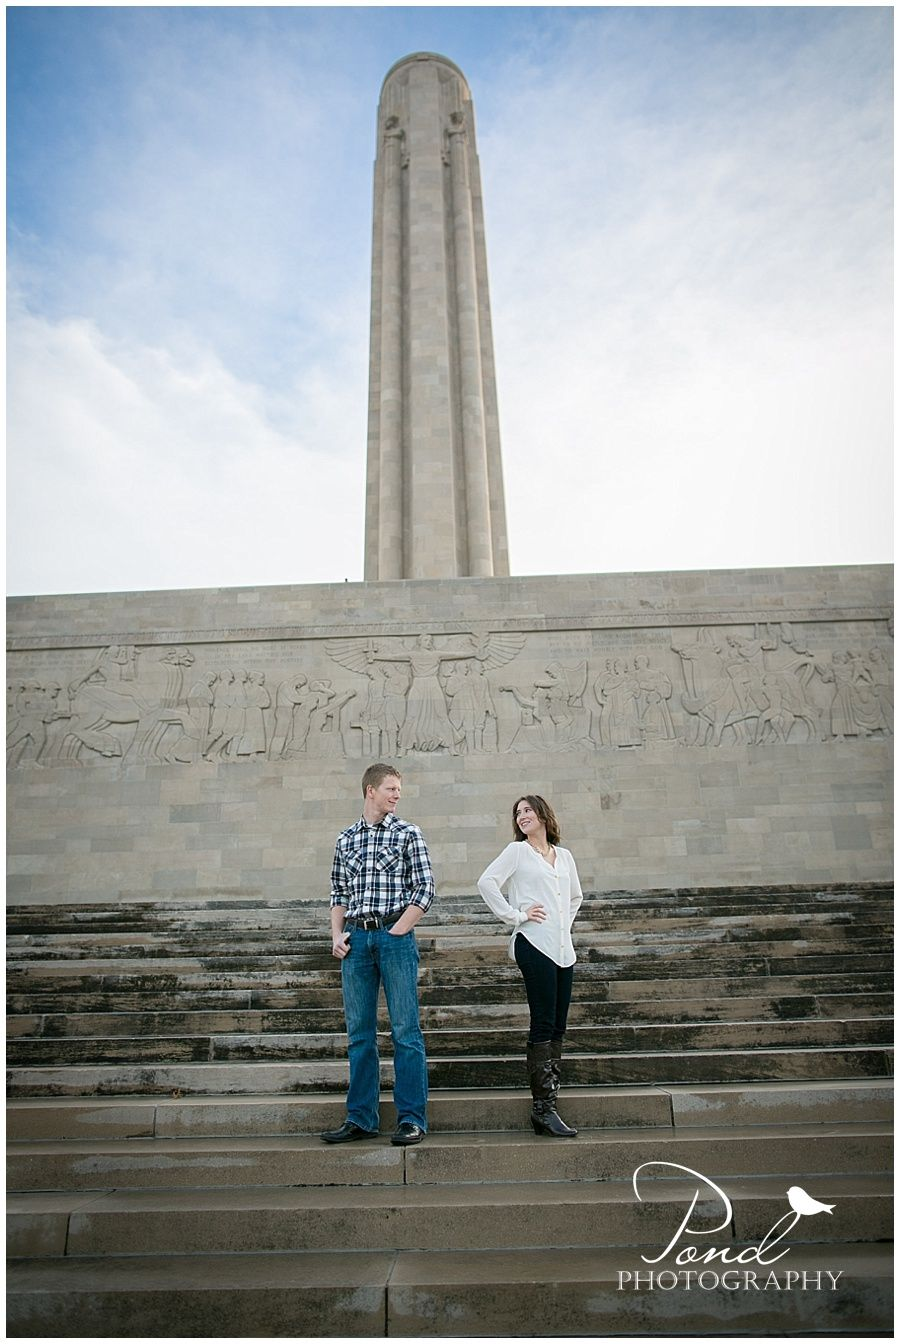 Maybe we could get a pose by several different kc landmarks.